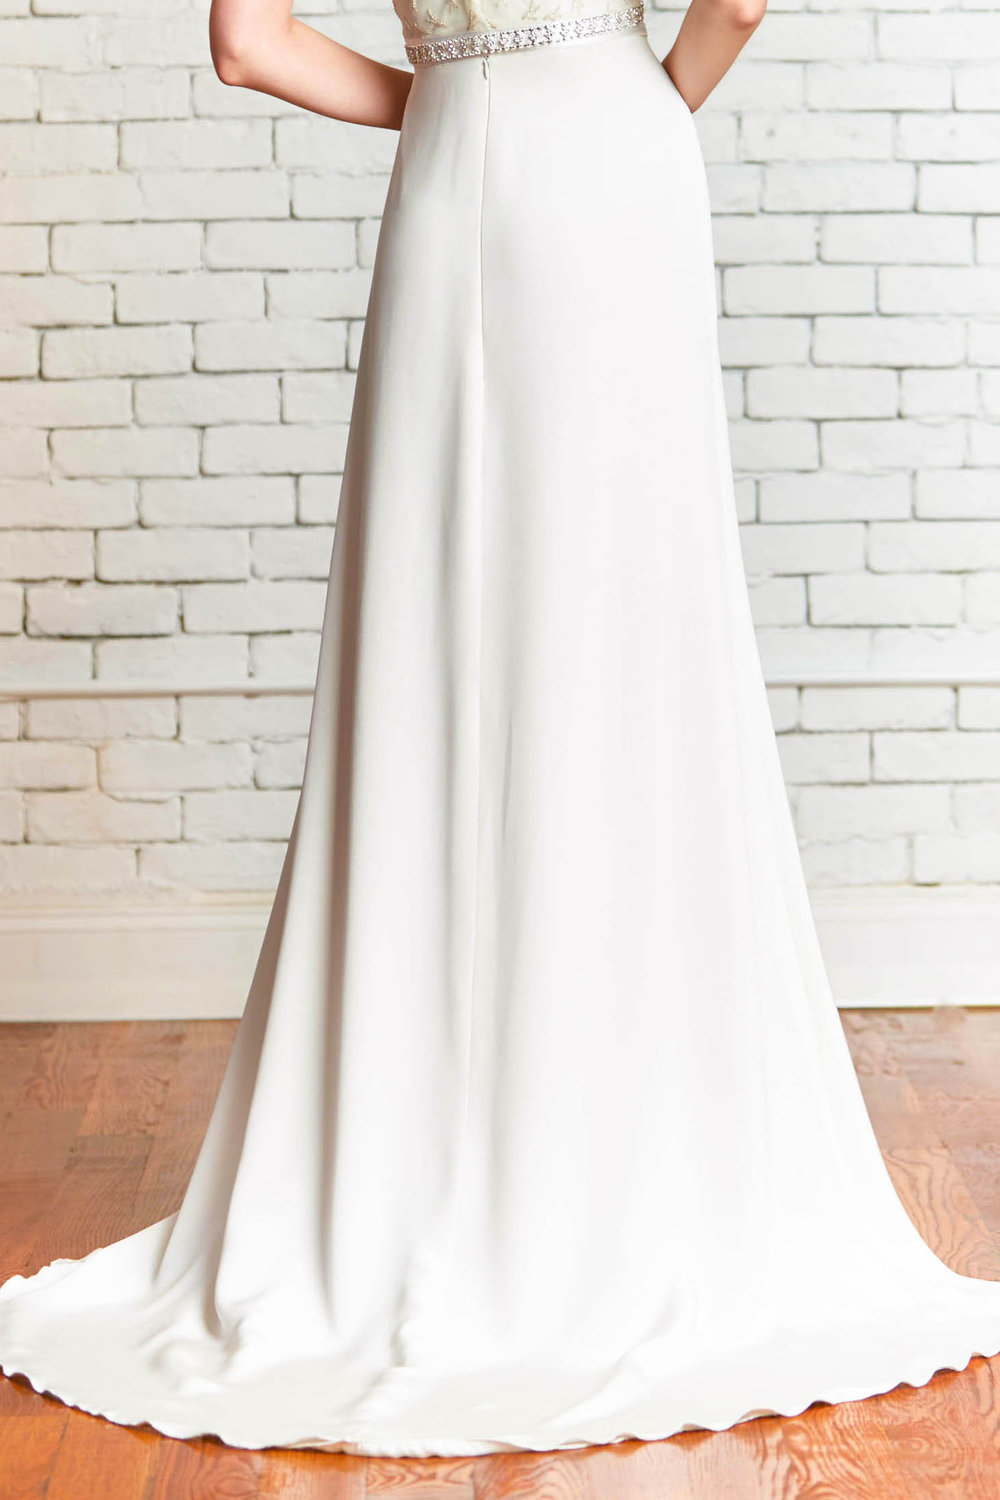 Aimee-back-skirt_Dramatic_Train_Modern_Wedding_Separates.jpg